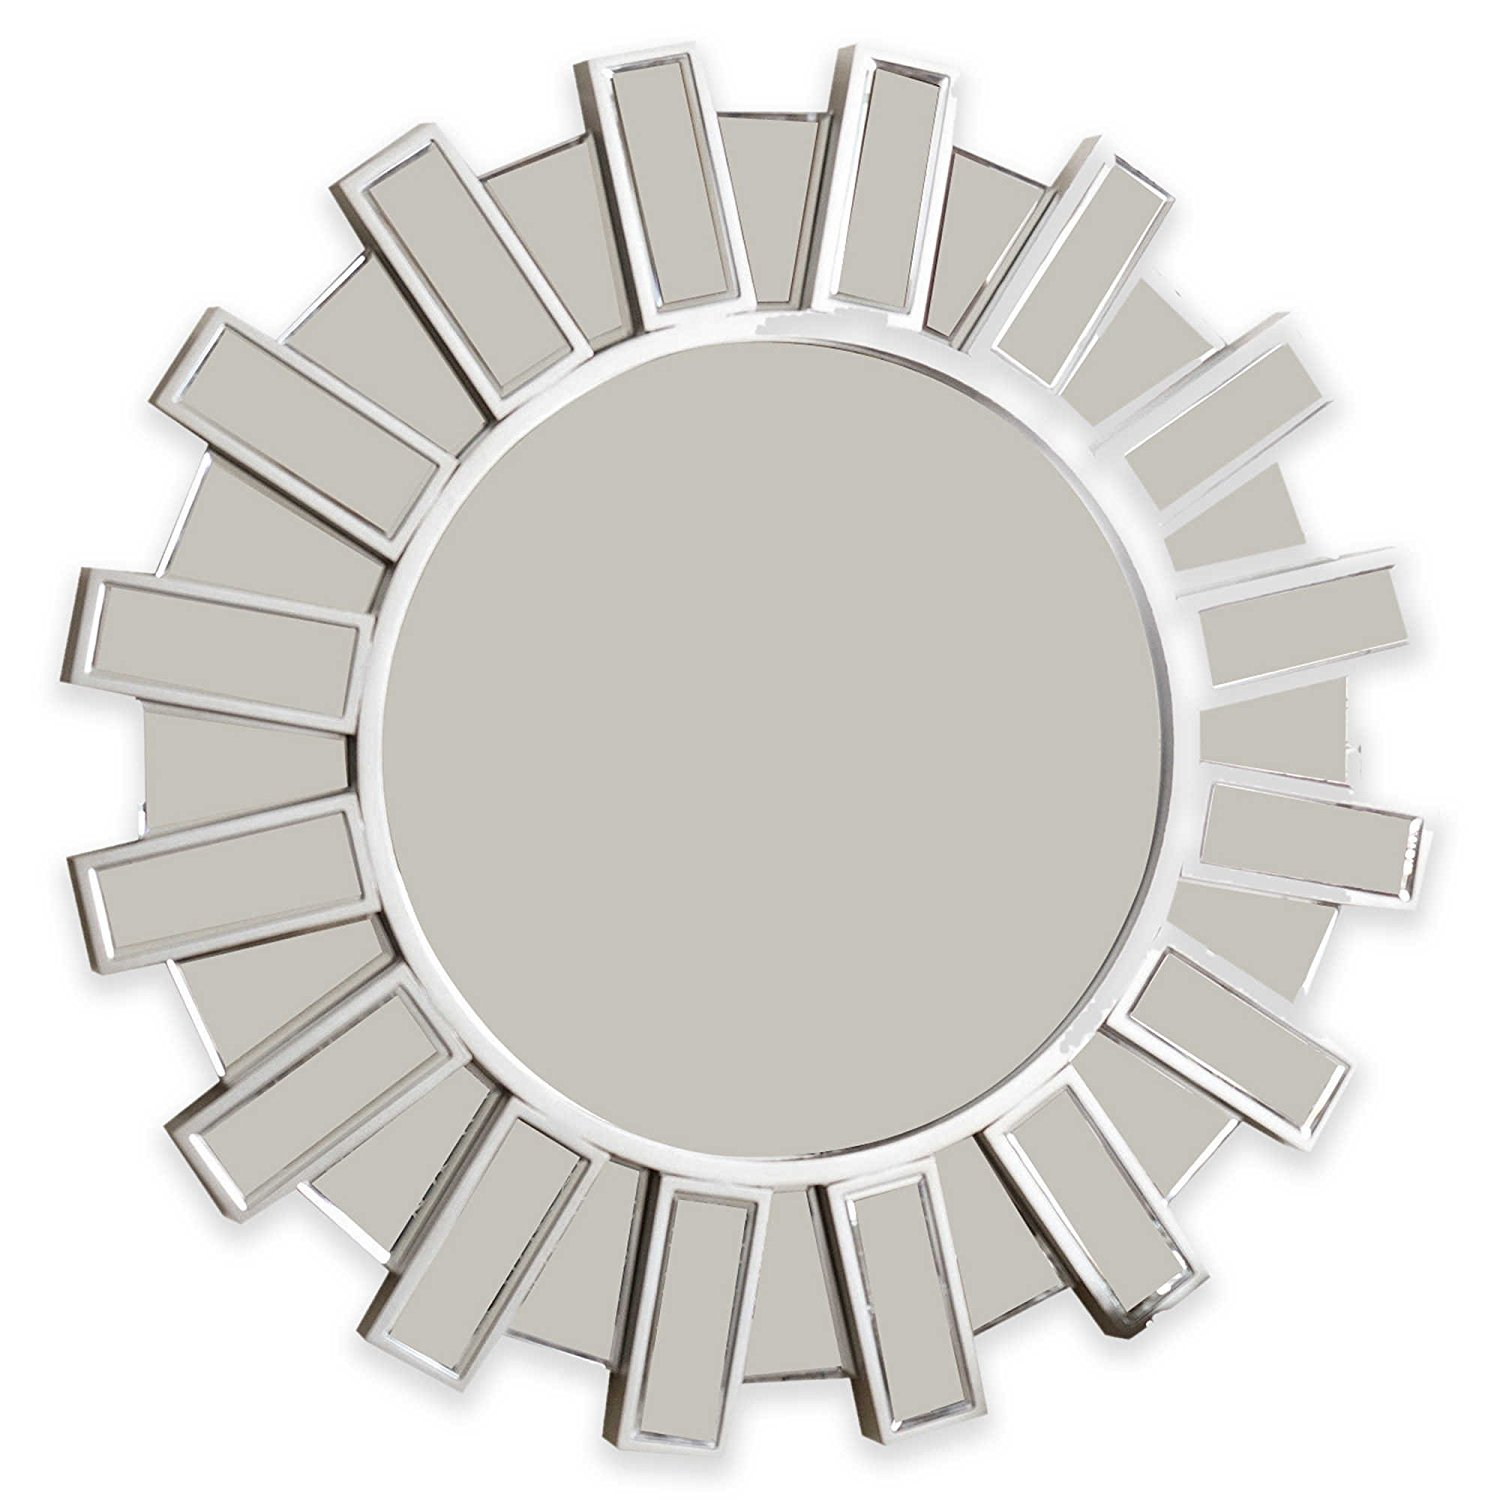 Cheap Round Wall Mirrors Ikea Find Round Wall Mirrors Ikea Deals On